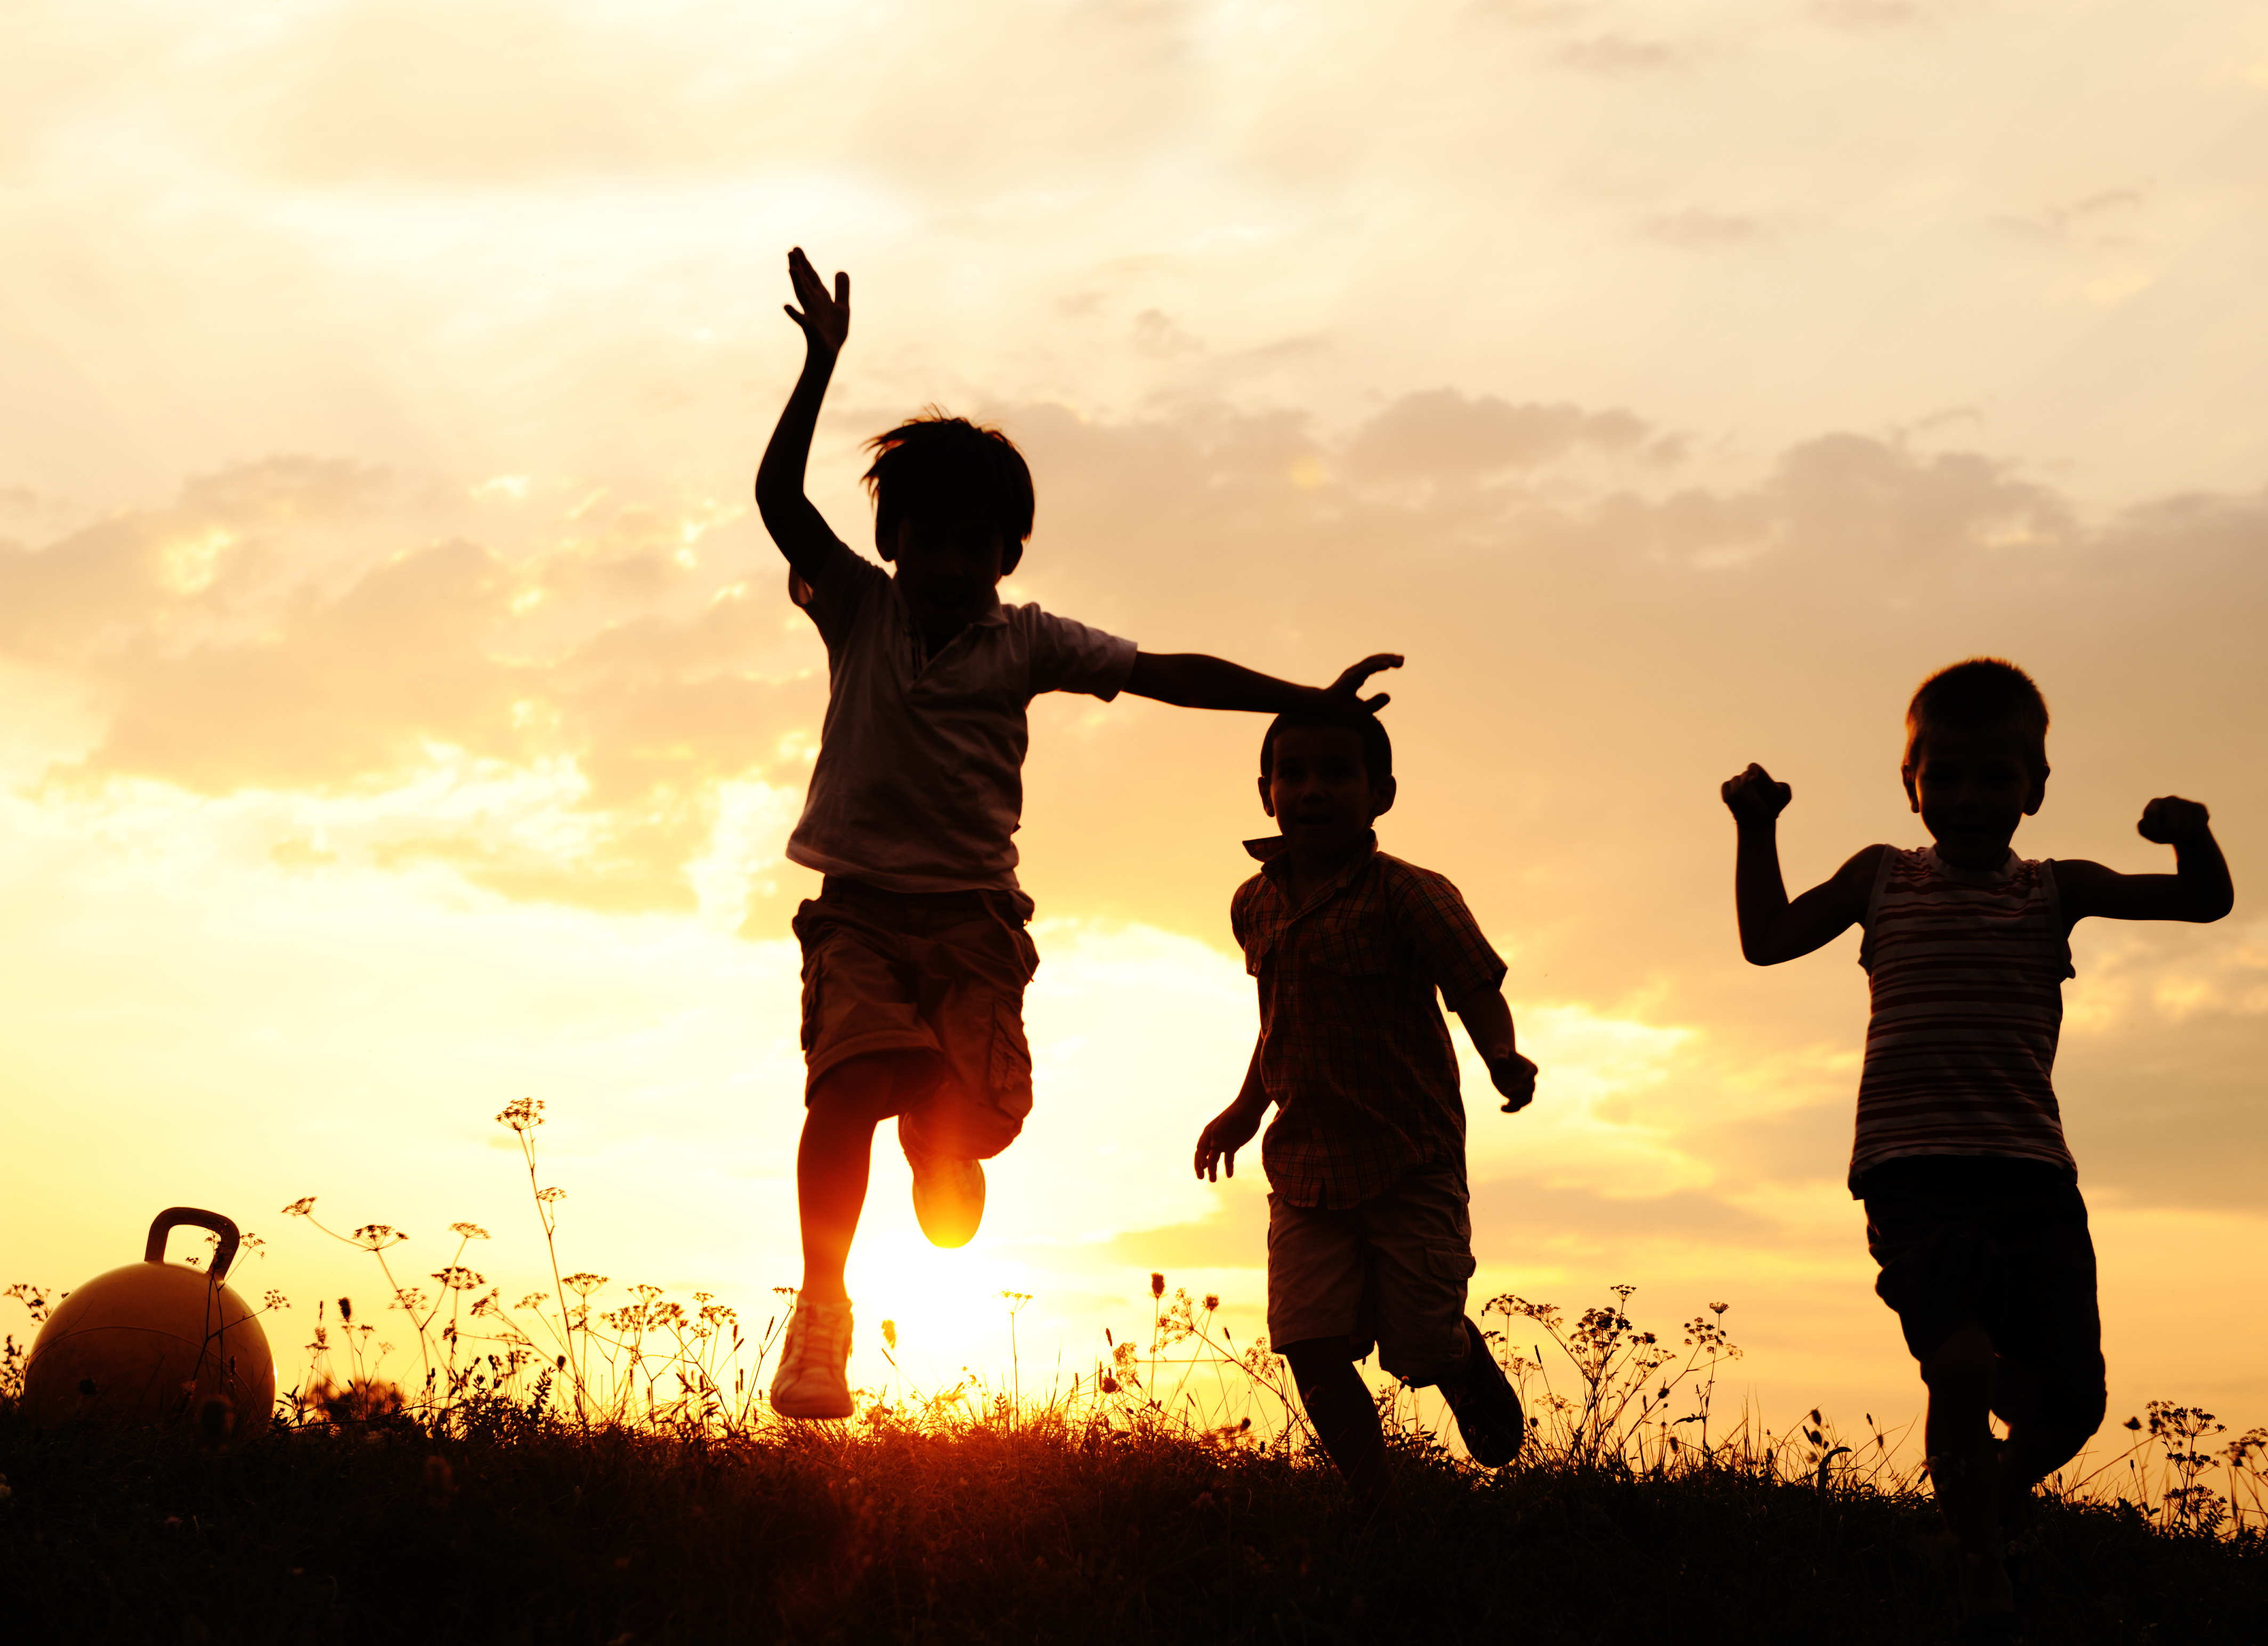 stockfresh_1211530_silhouette-group-of-happy-children-playing-on-meadow-sunset-summertime_sizeXL_9f9